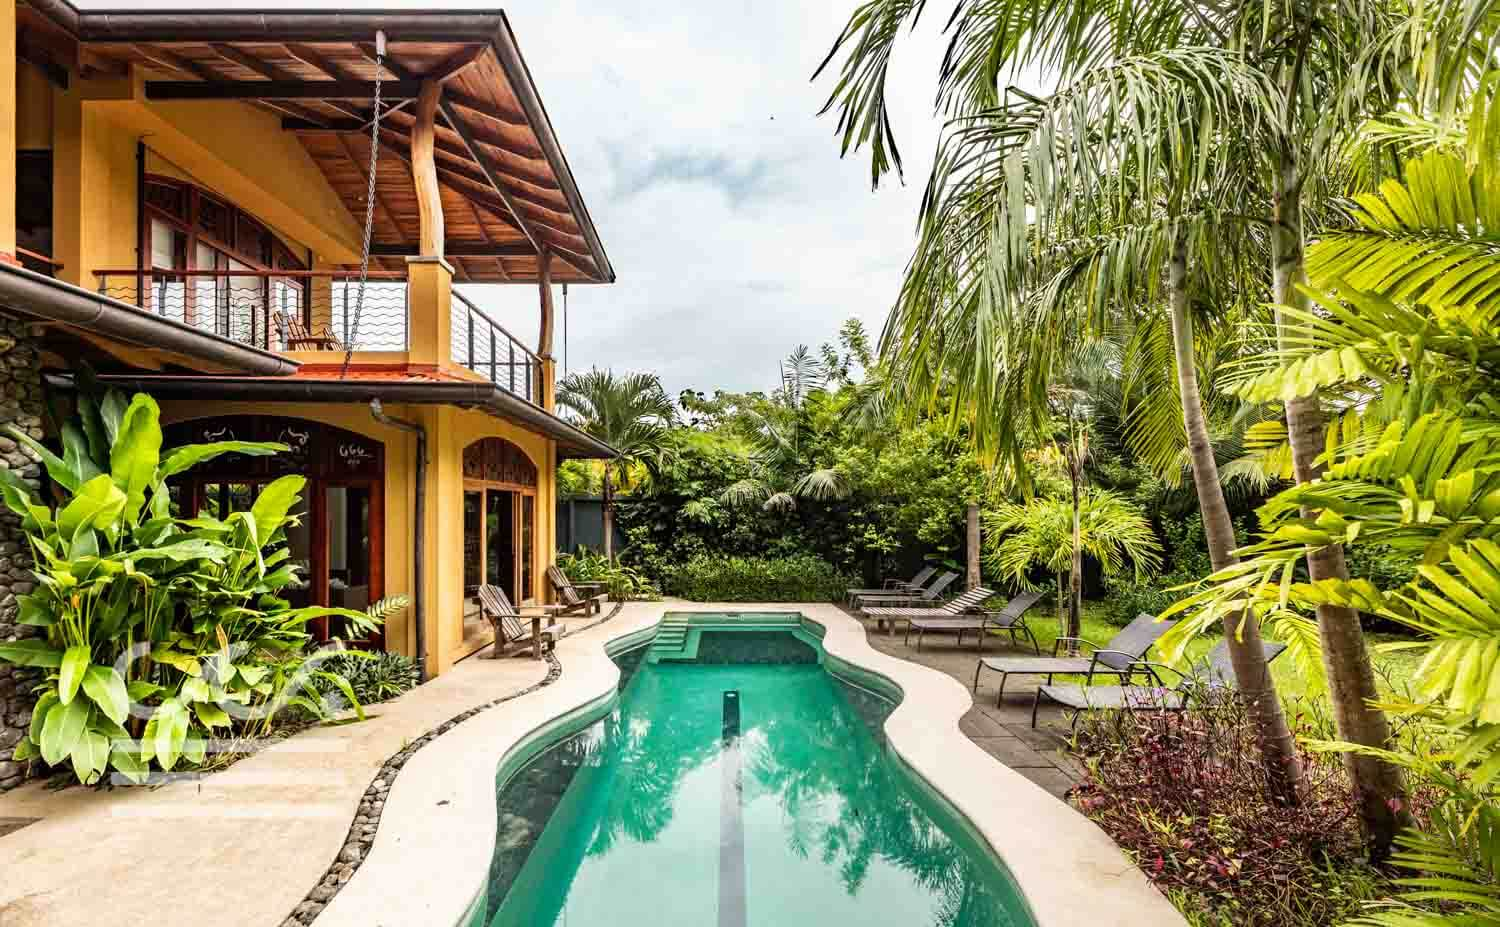 Endless-Summer-Wanderlust-Realty-Real-Estate-Rentals-Nosara-Costa-Rica-1.jpg